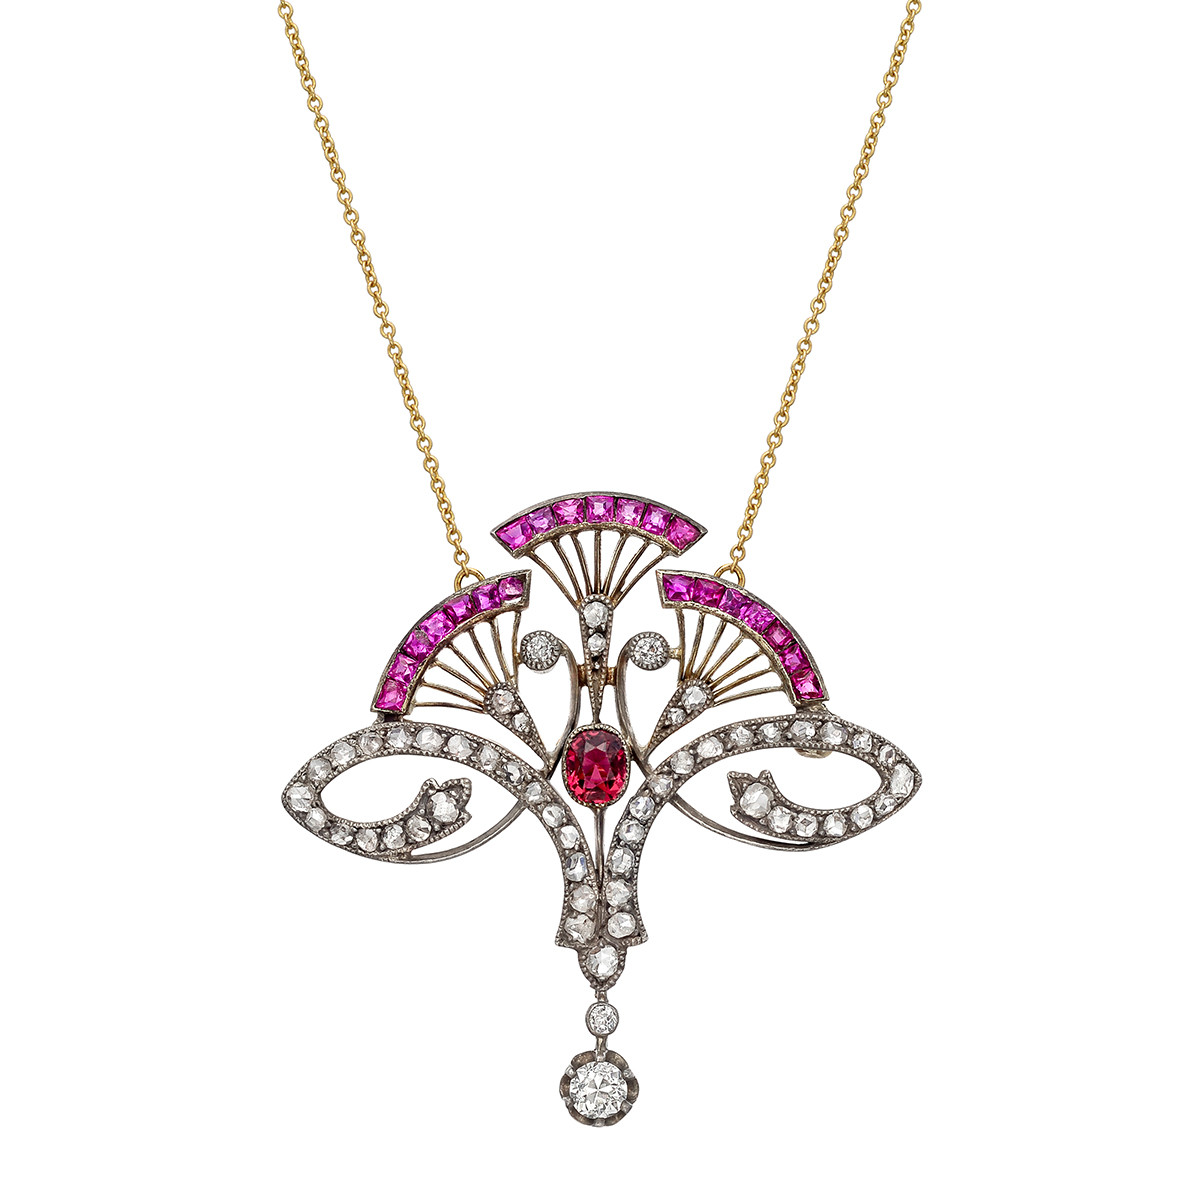 Turn-of-the-Century Diamond & Gem-Set Fan Pendant